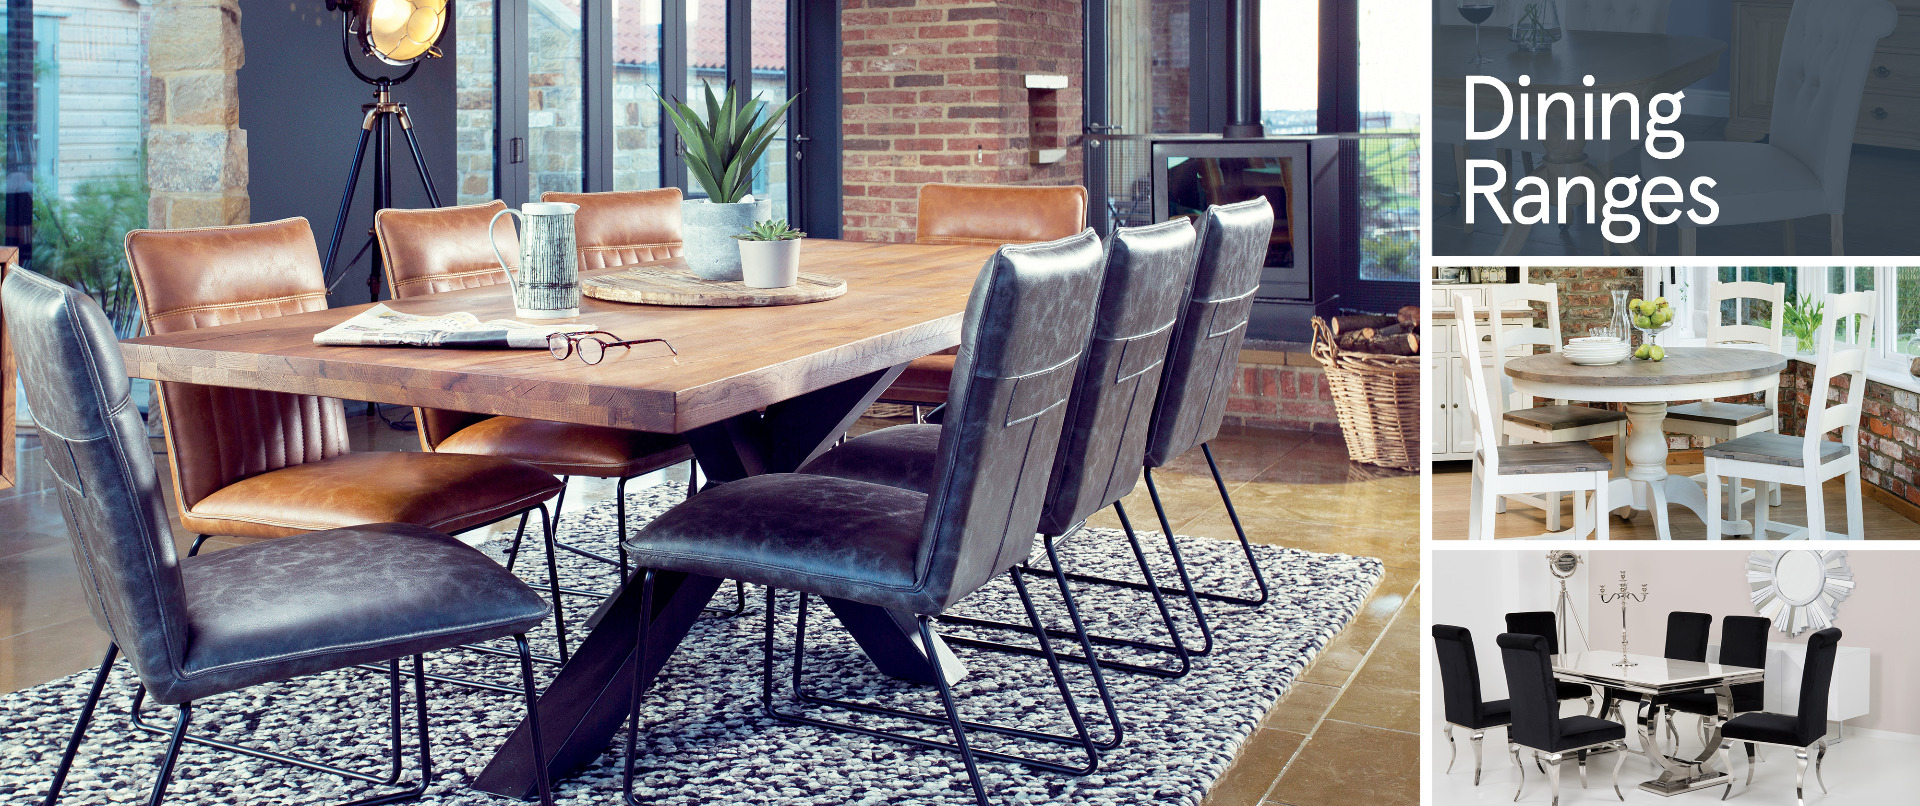 All Dining Furniture Ranges